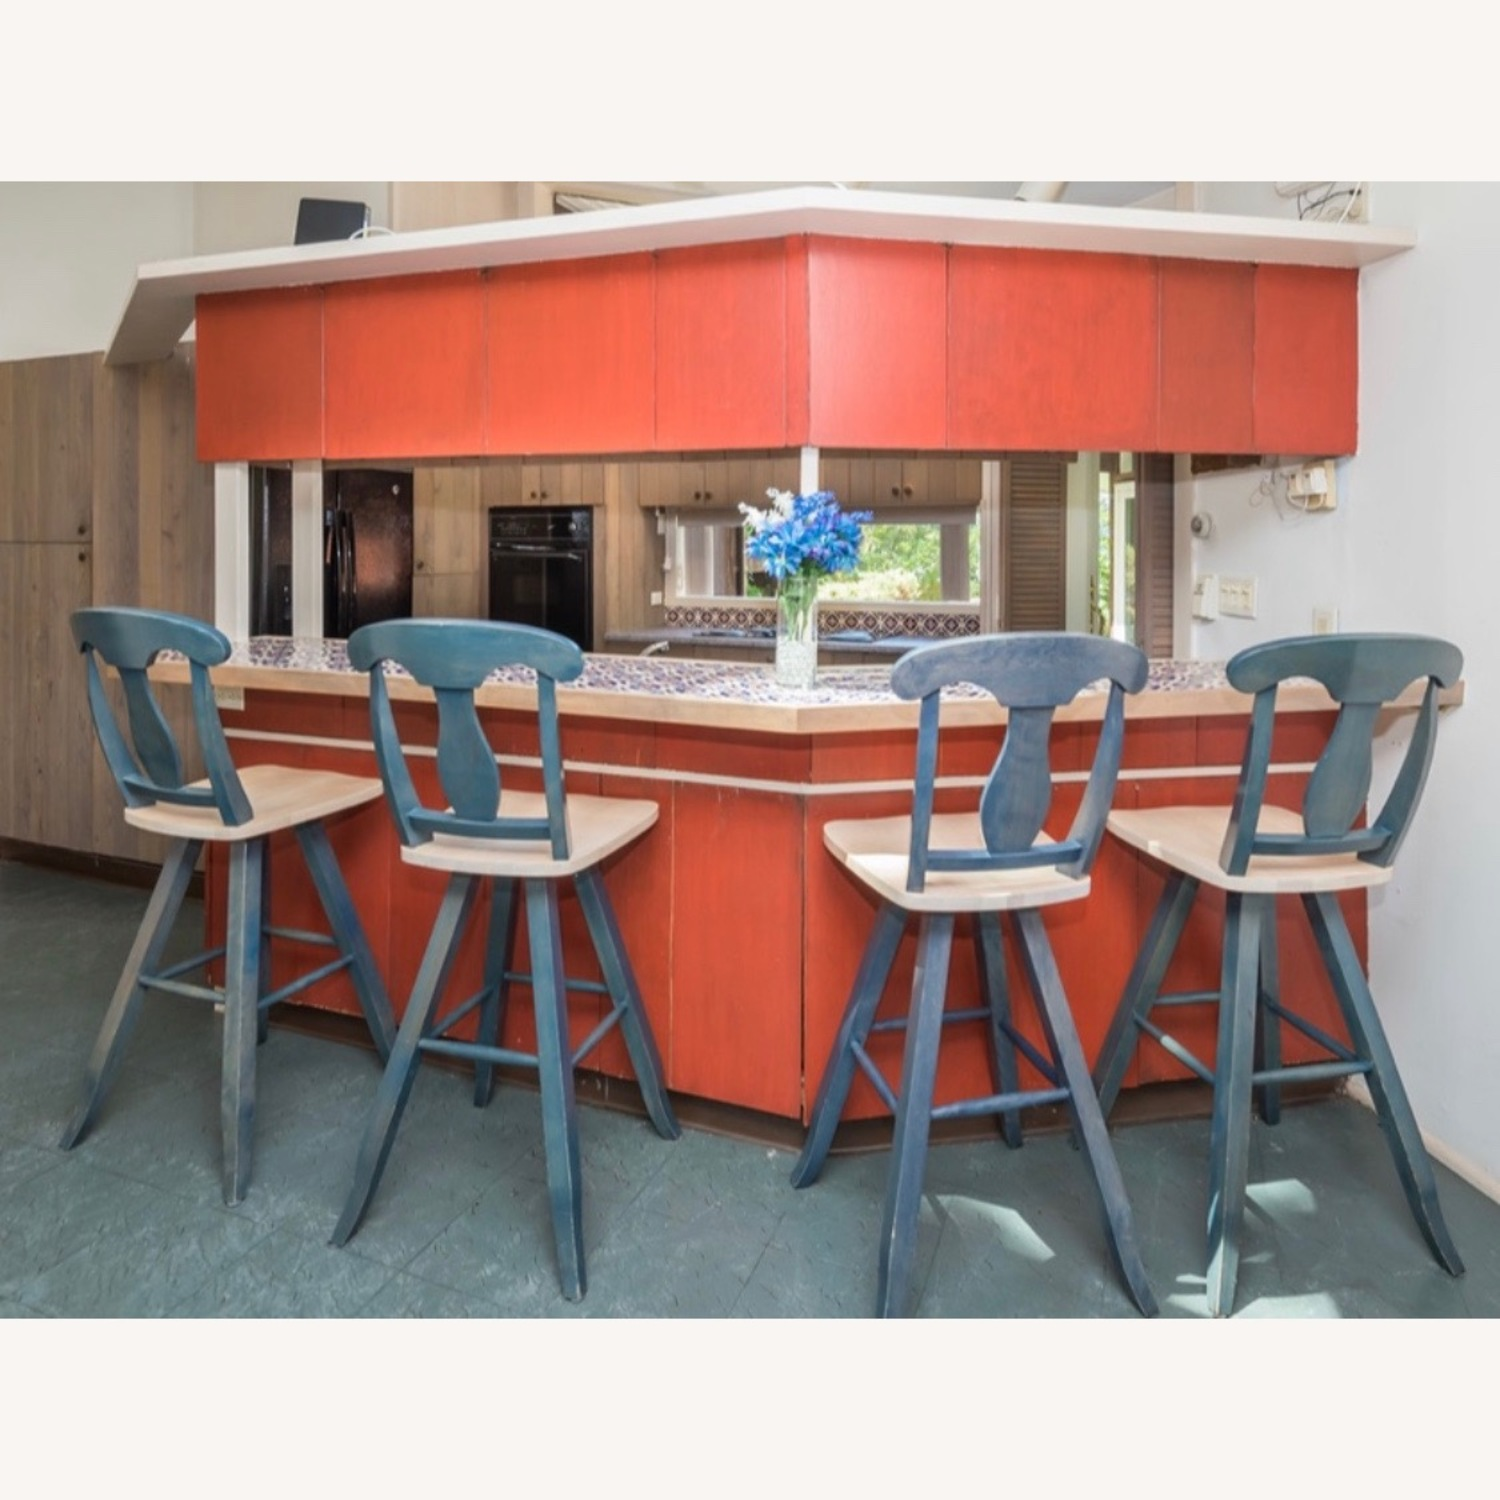 4 Blue Canadel Wooden Swivel Bar Counter Stools - image-1